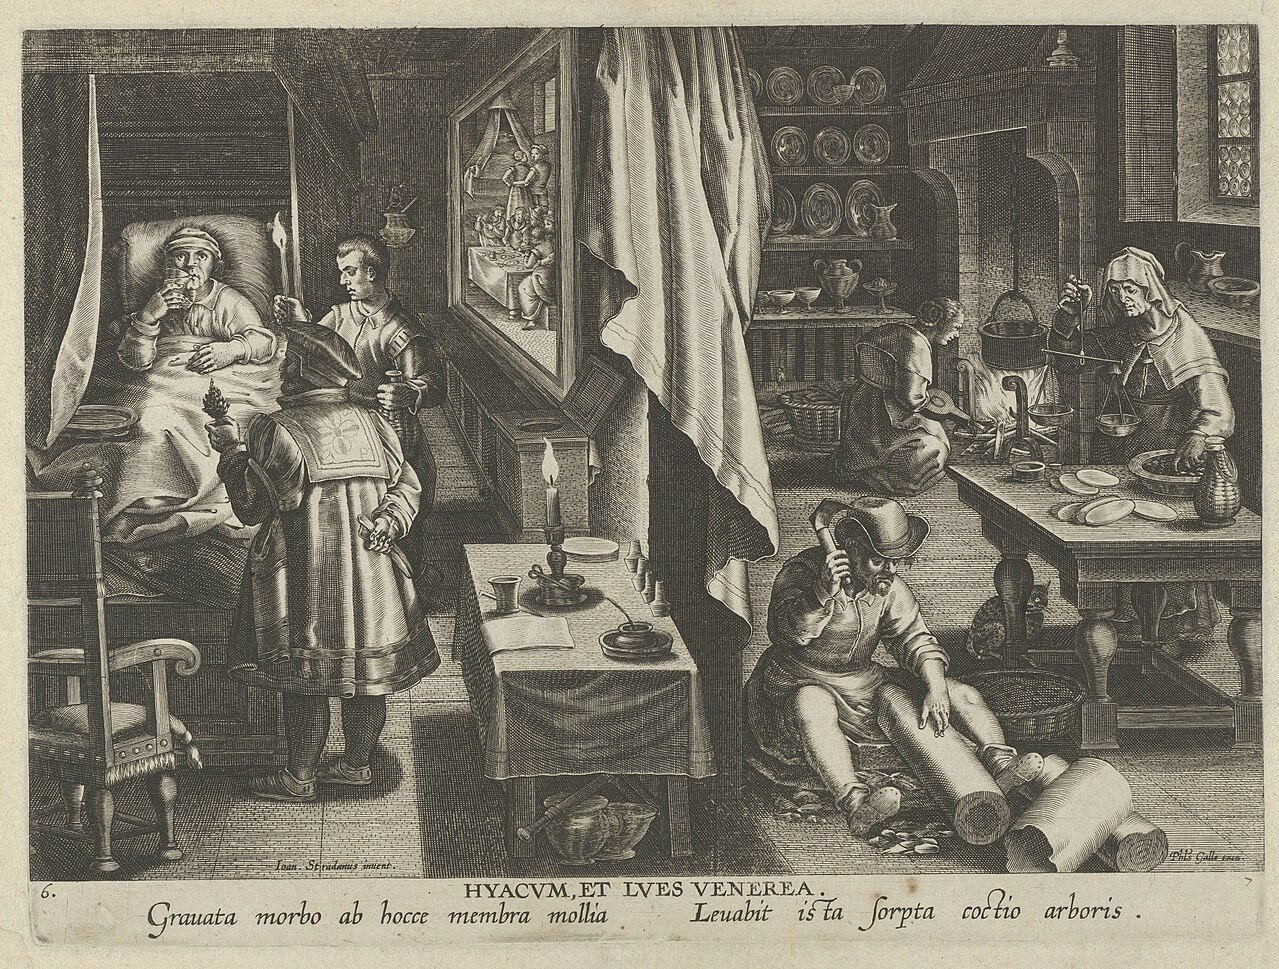 1280px-New_Inventions_of_Modern_Times_-Nova_Reperta-,_The_Discovery_of_Guaicum_as_a_Cure_for_Veneral_Infection,_plate_6_MET_DP841125.jpg